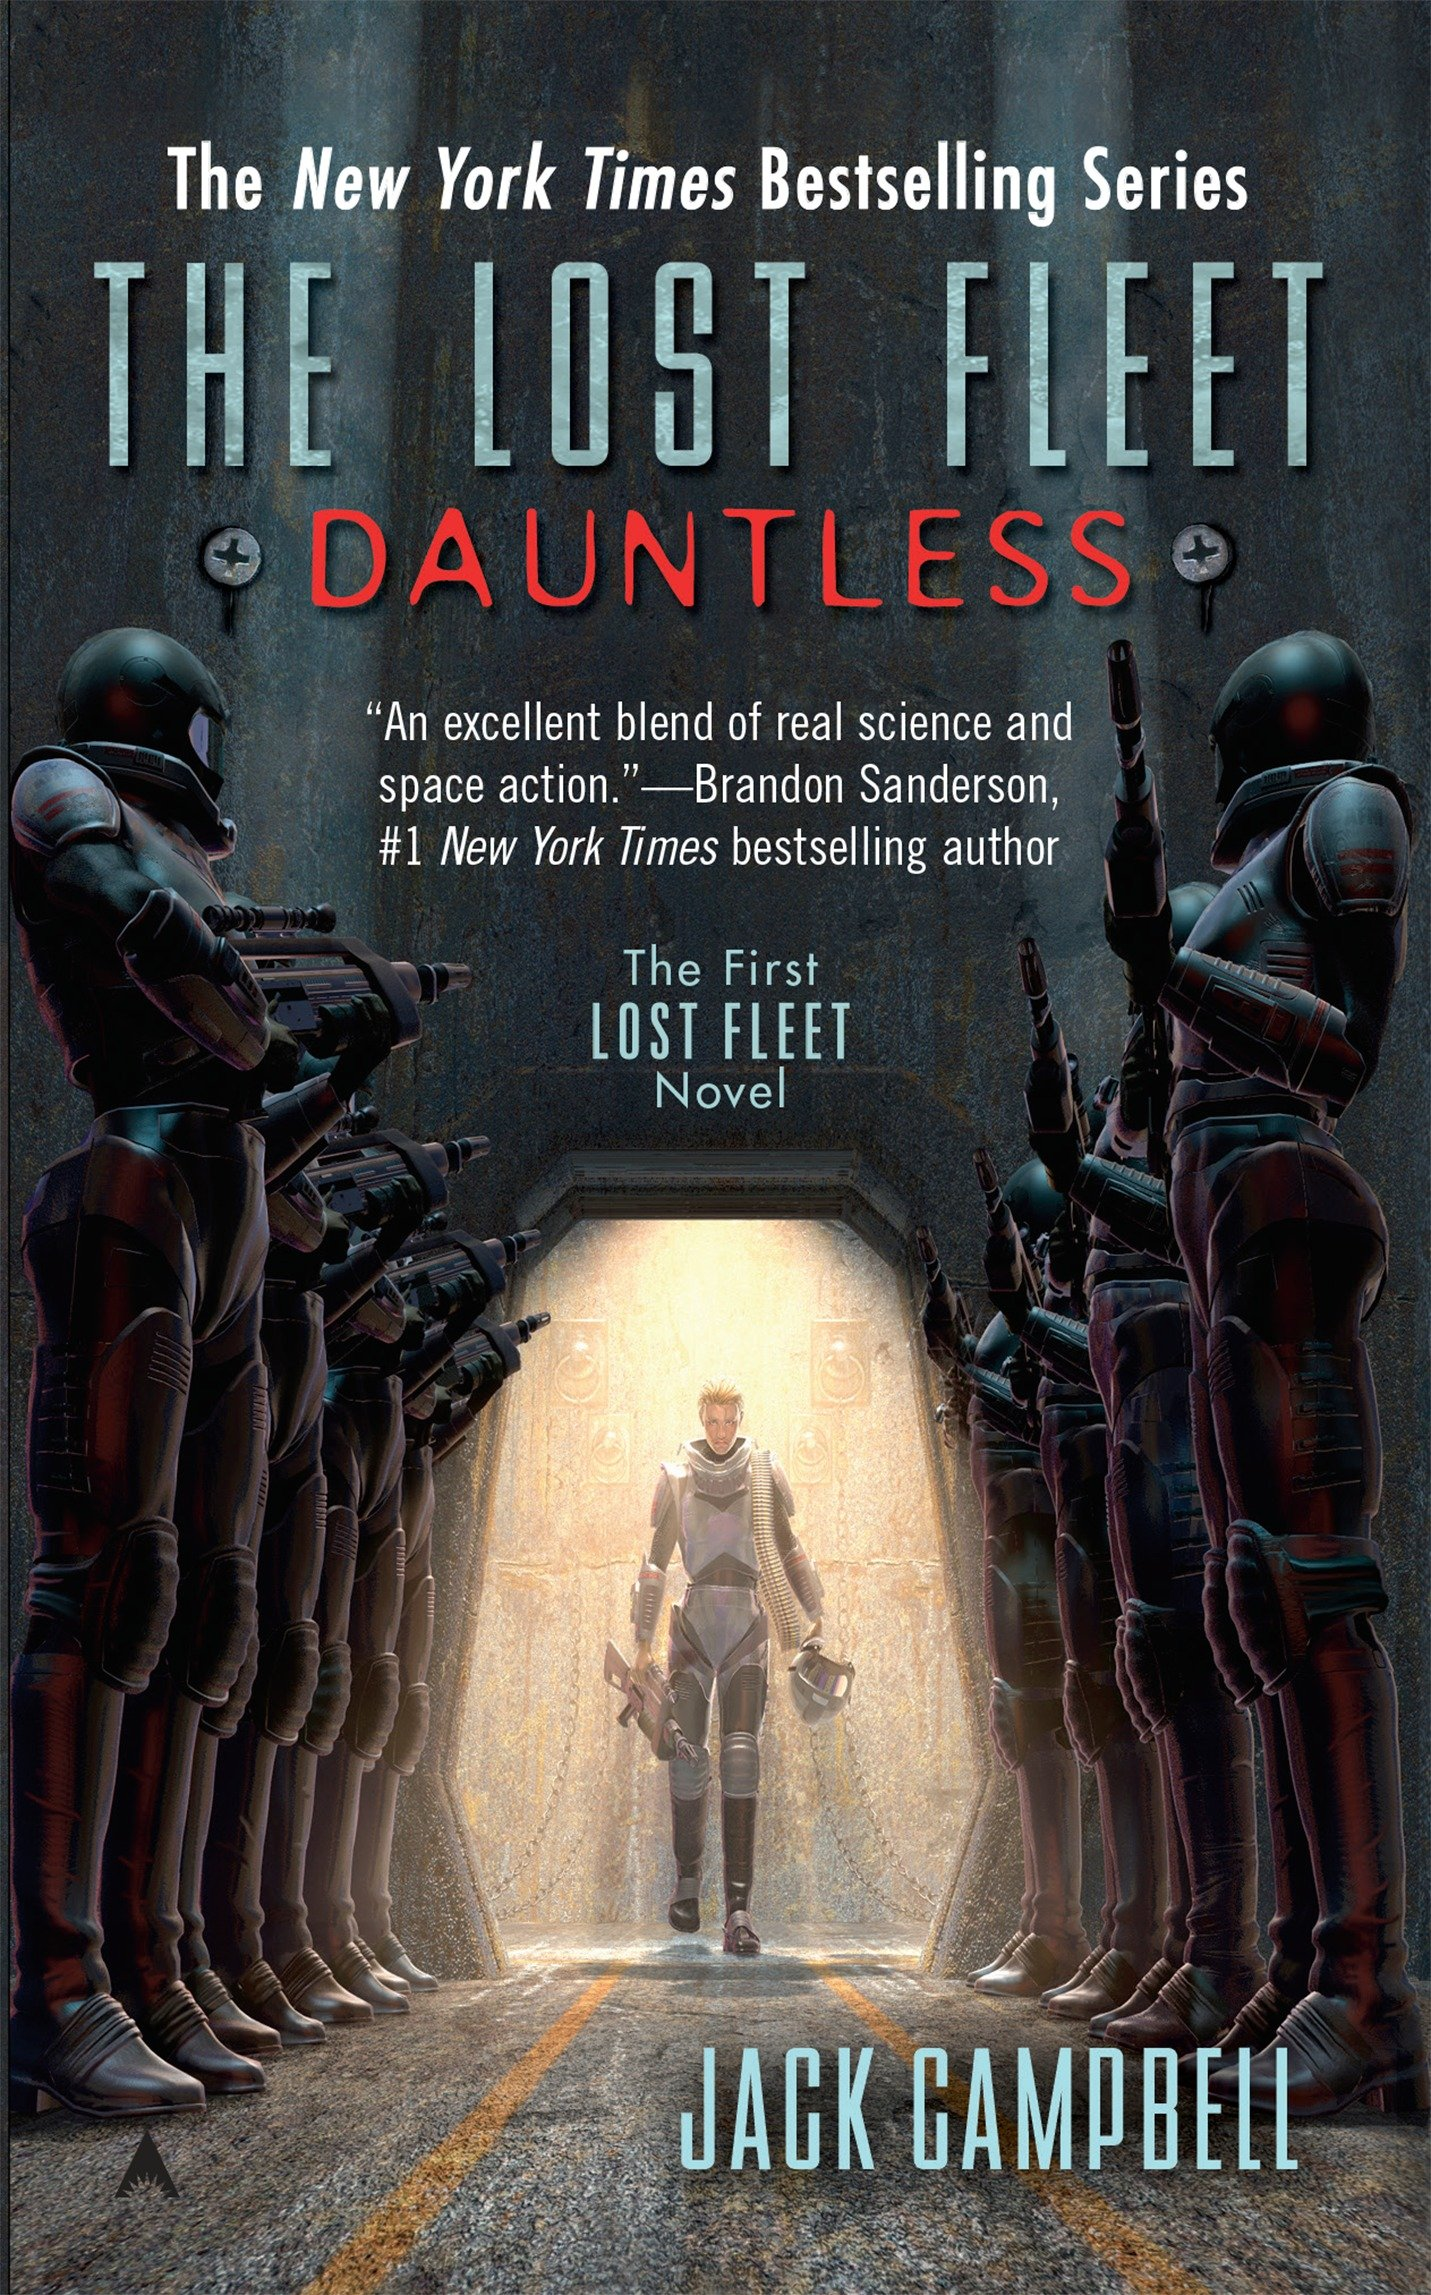 The Lost Fleet: Dauntless